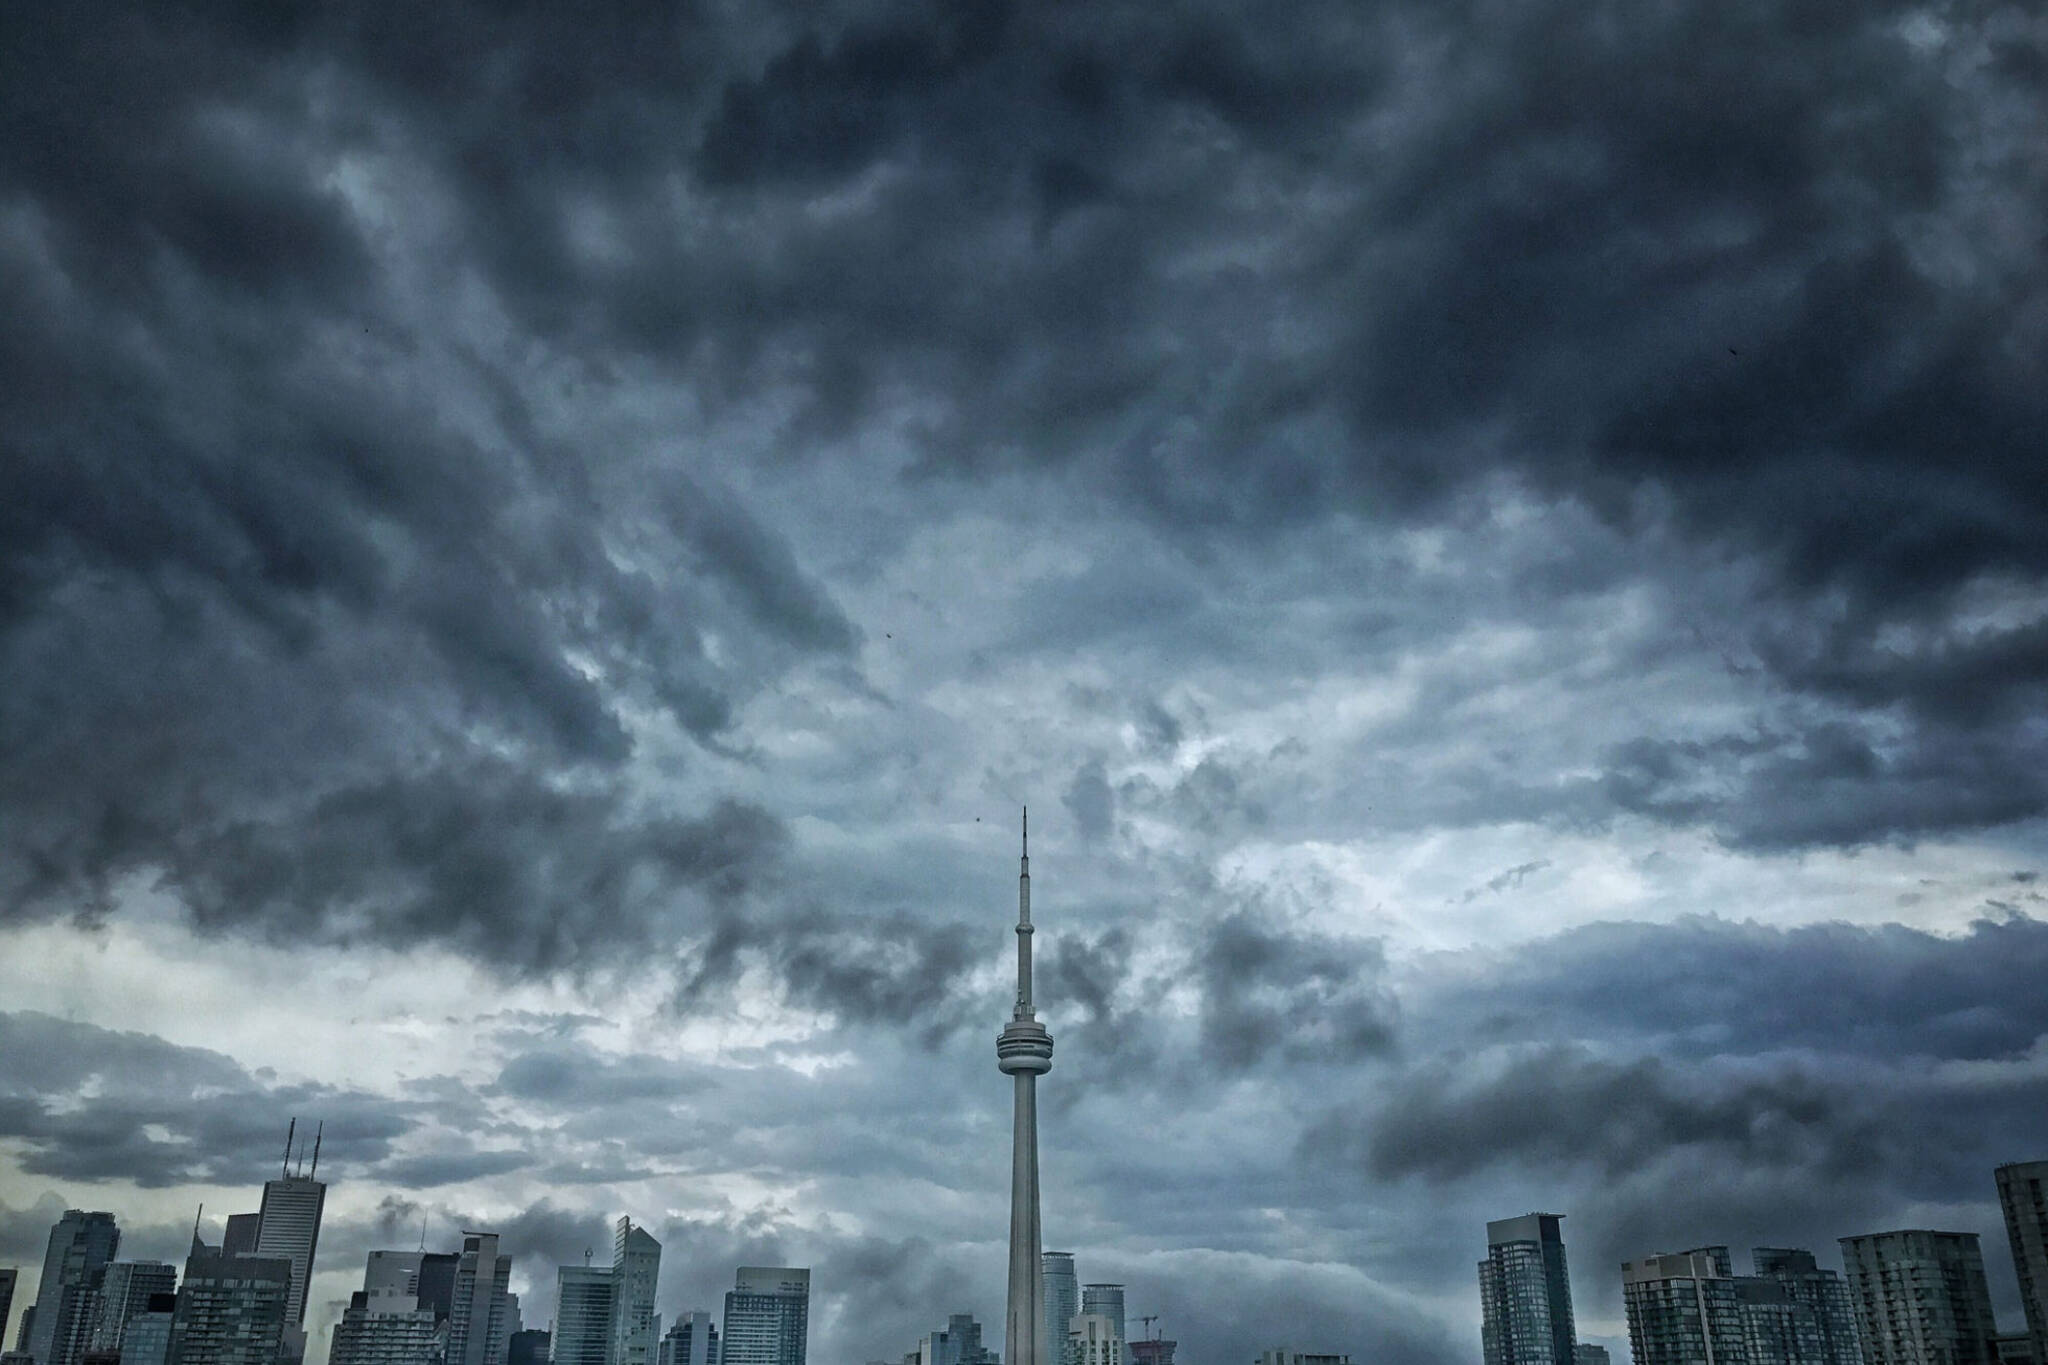 Toronto is about to get a serious wind storm